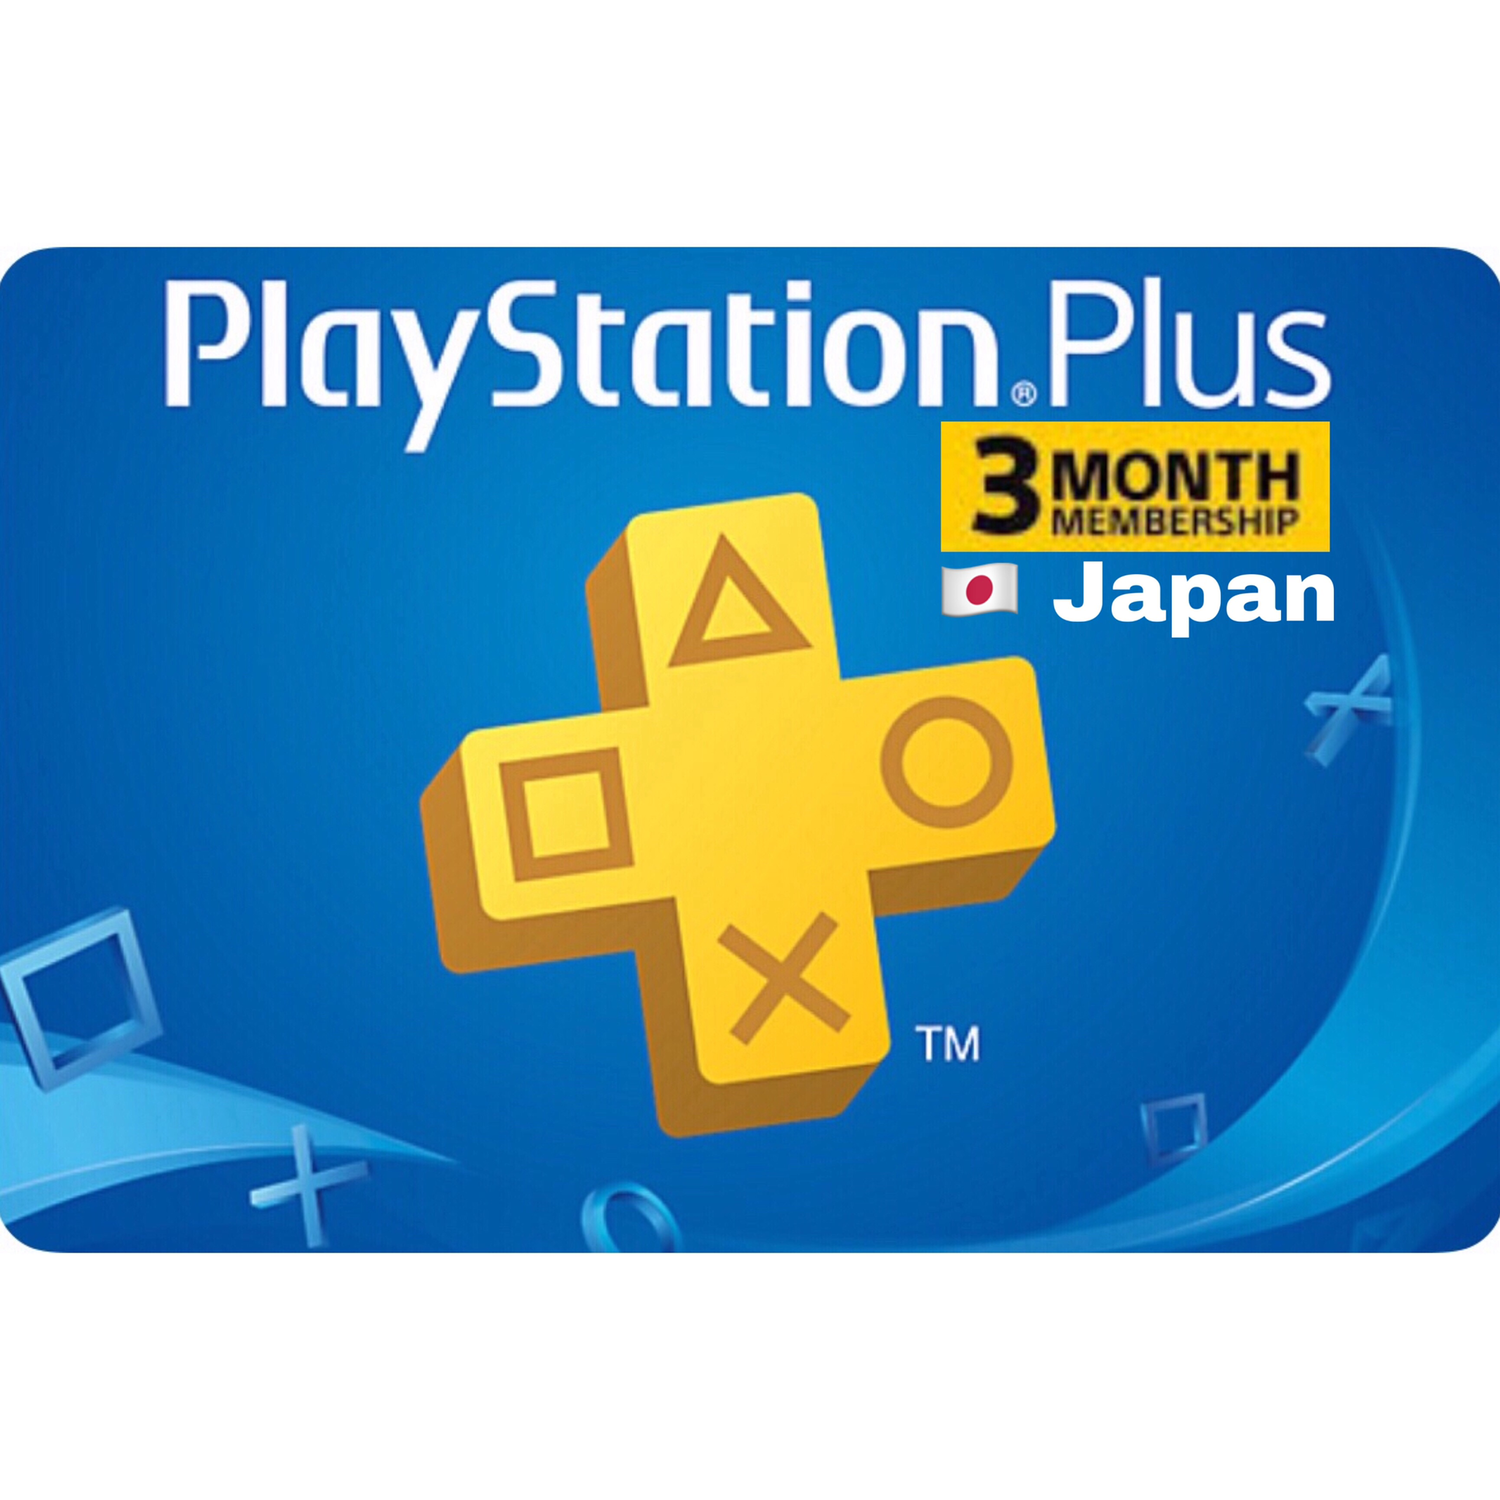 PSN Plus Card - Playstation Plus Japan 3 Months Membership